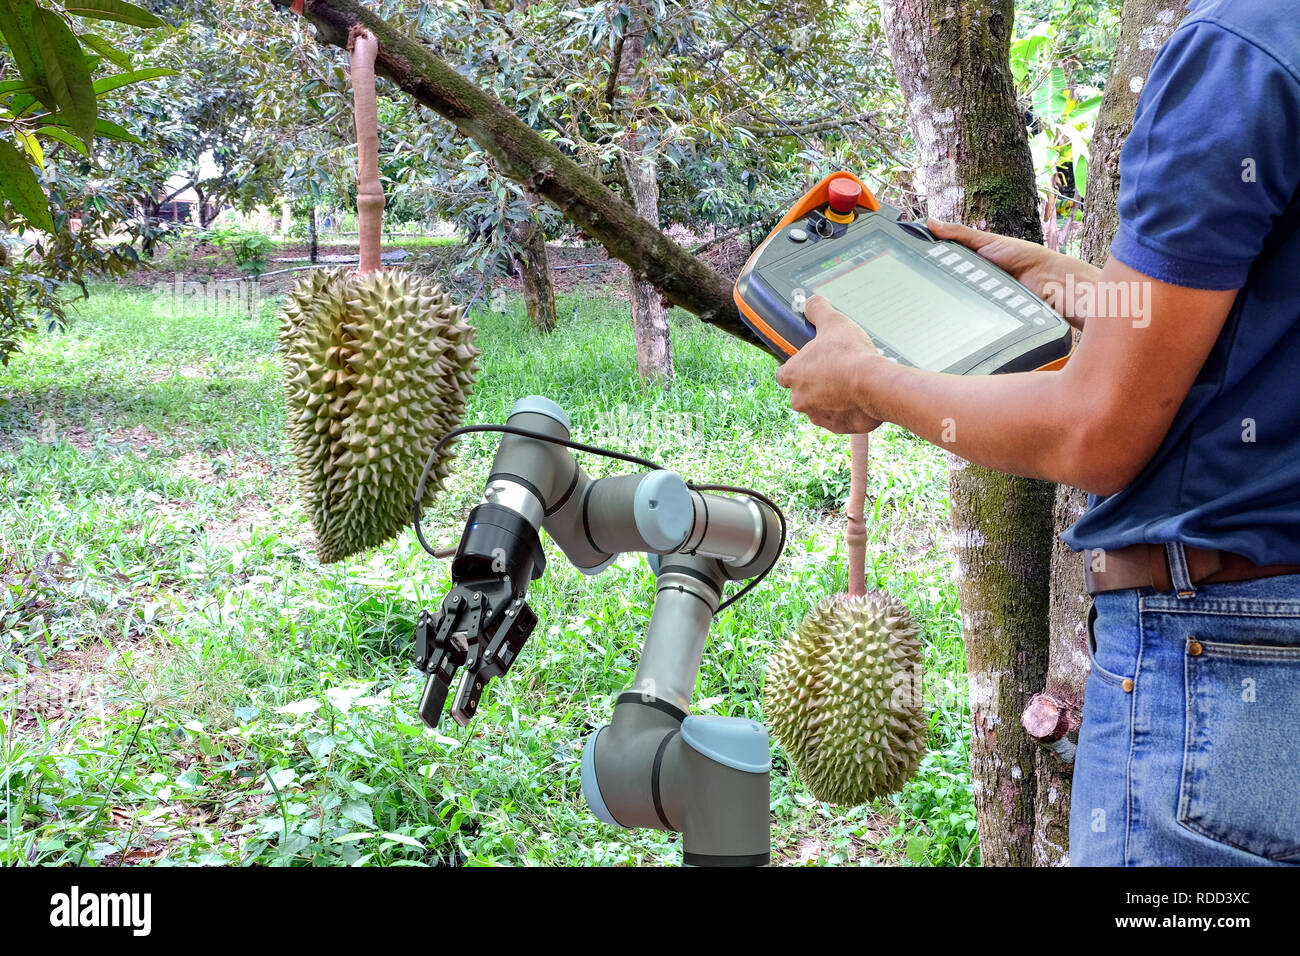 Engineer use remote control for industrial robots to monitor work functions, helping farmers harvest Durian in the garden - Stock Image